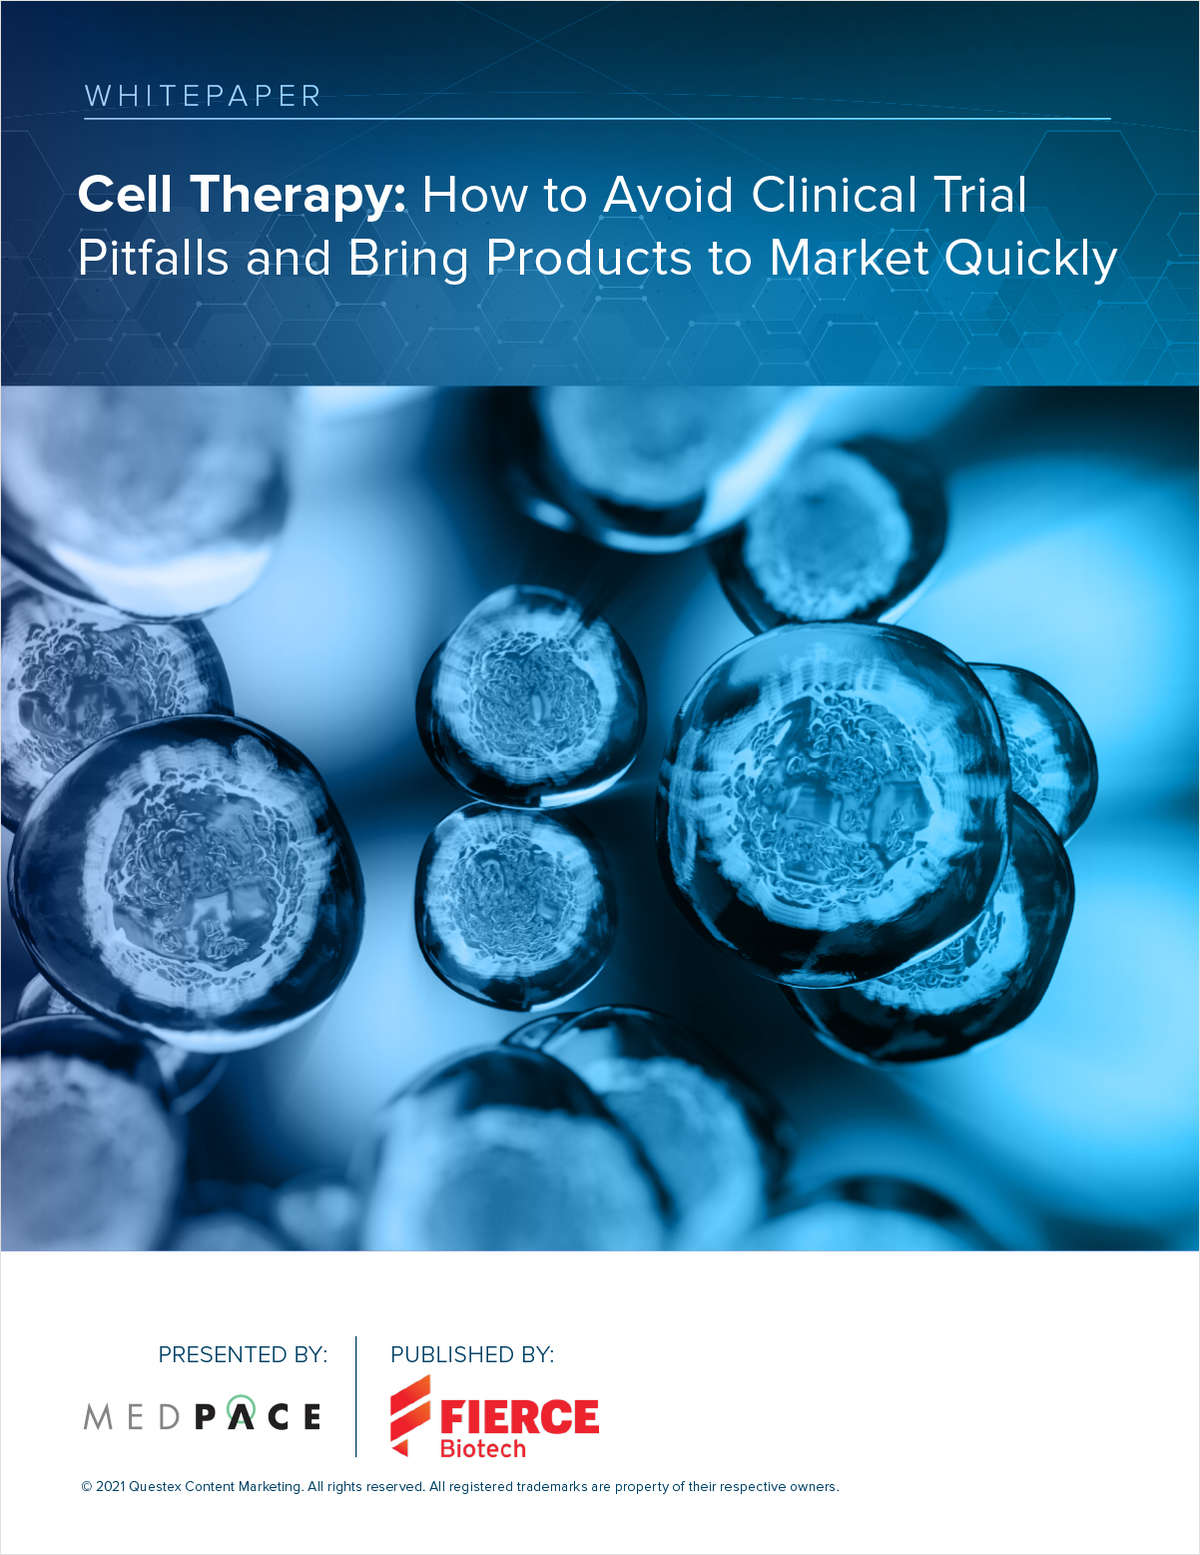 Cell Therapy: How to Avoid Clinical Trial Pitfalls and Bring Products to Market Quickly